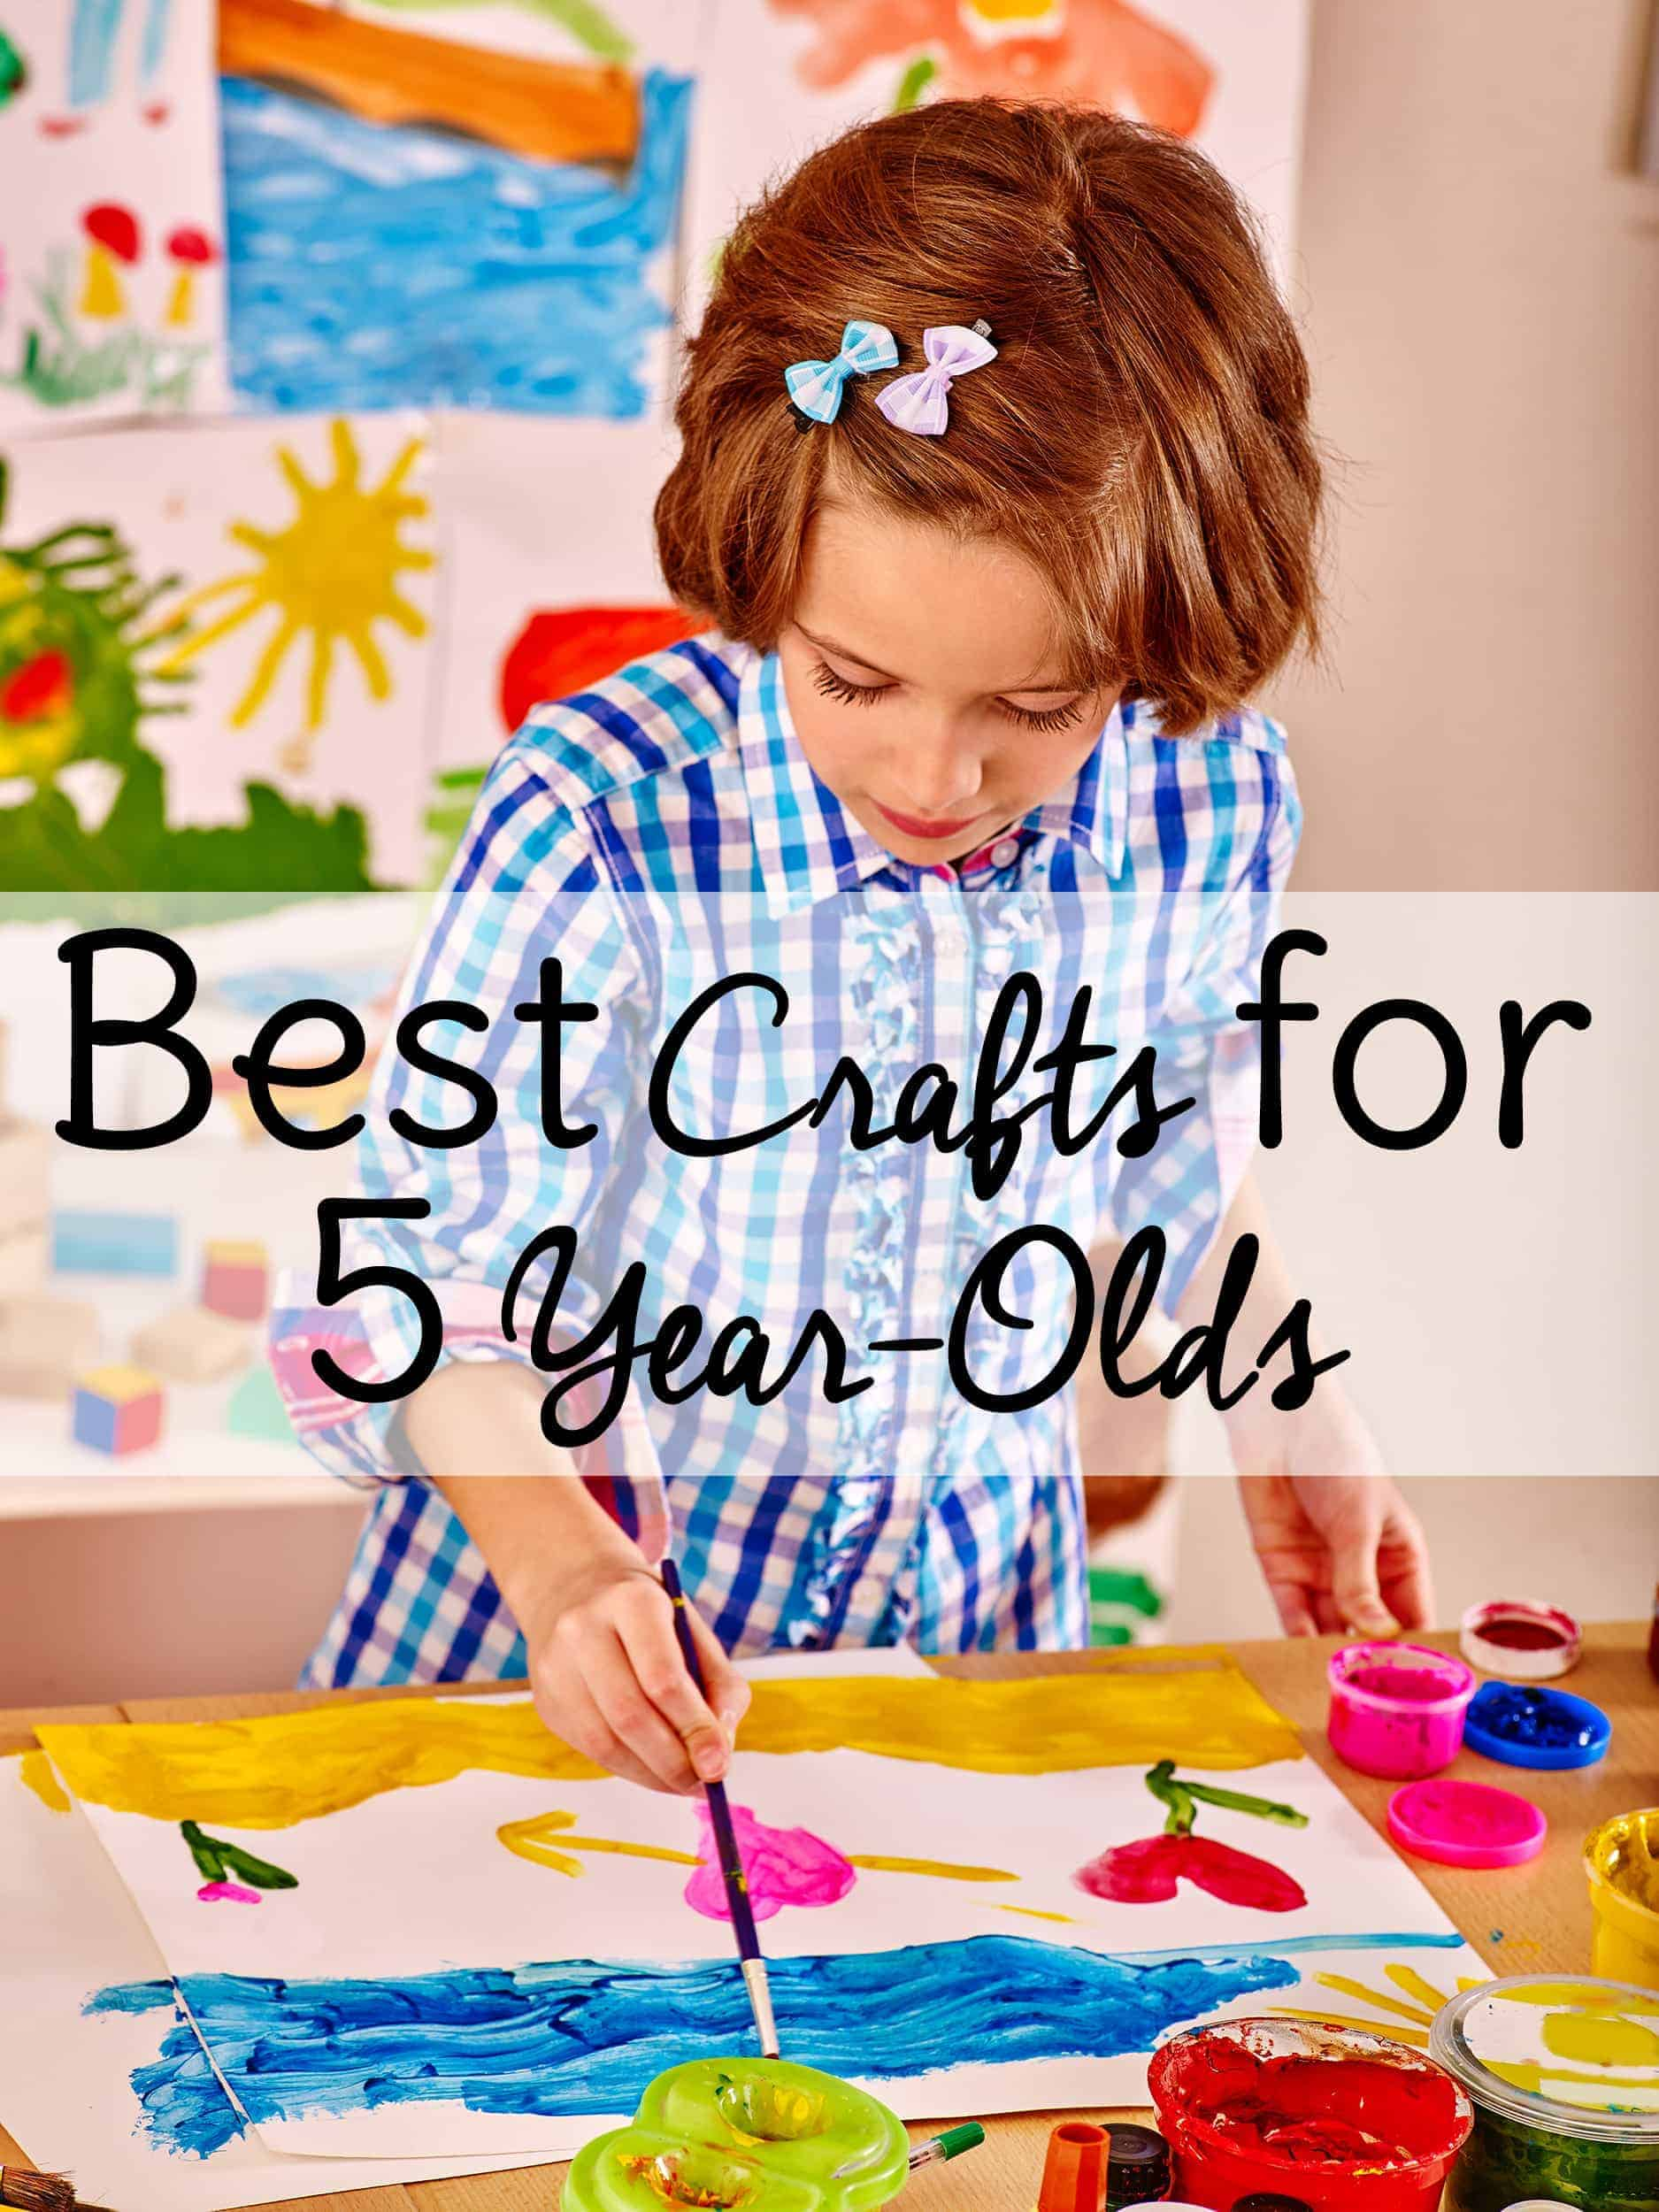 best crafts for 5 year olds christmas gift ideas sweet ForCraft Presents For 5 Year Olds